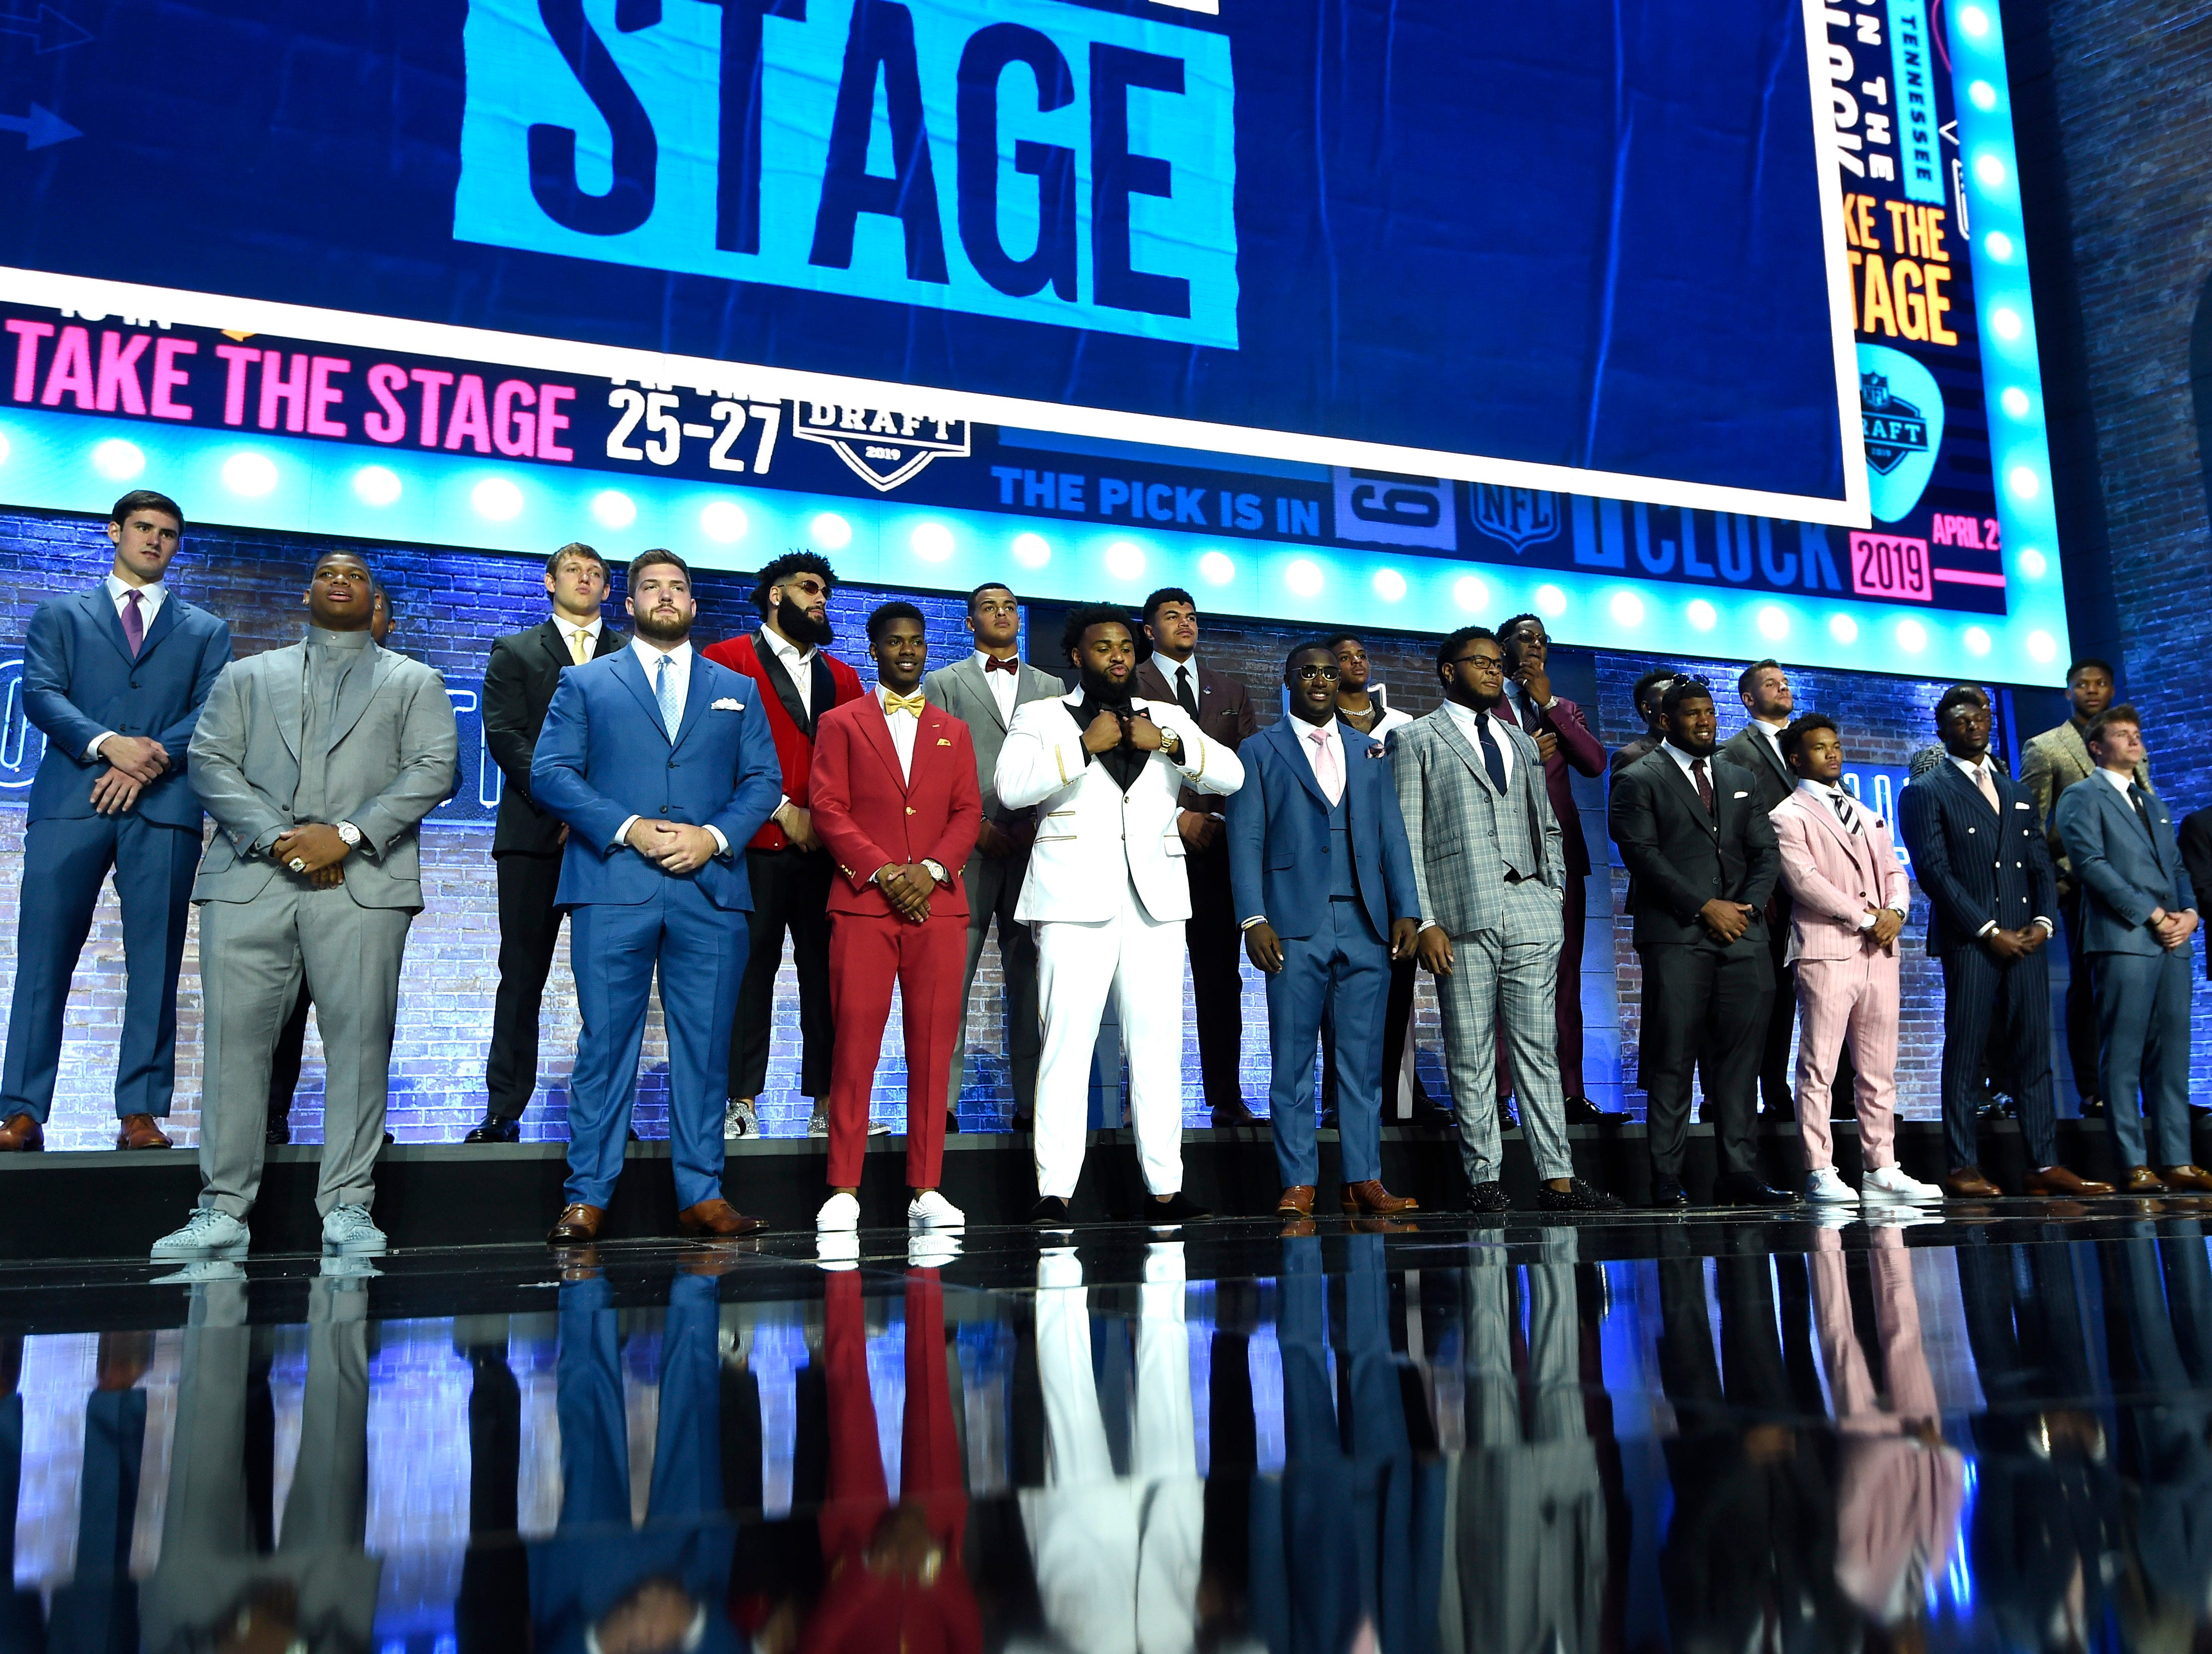 Draft prospects stand on stage for the National Anthem before the start of the first round of the NFL Draft Thursday, April 25, 2019, in Nashville, Tenn.